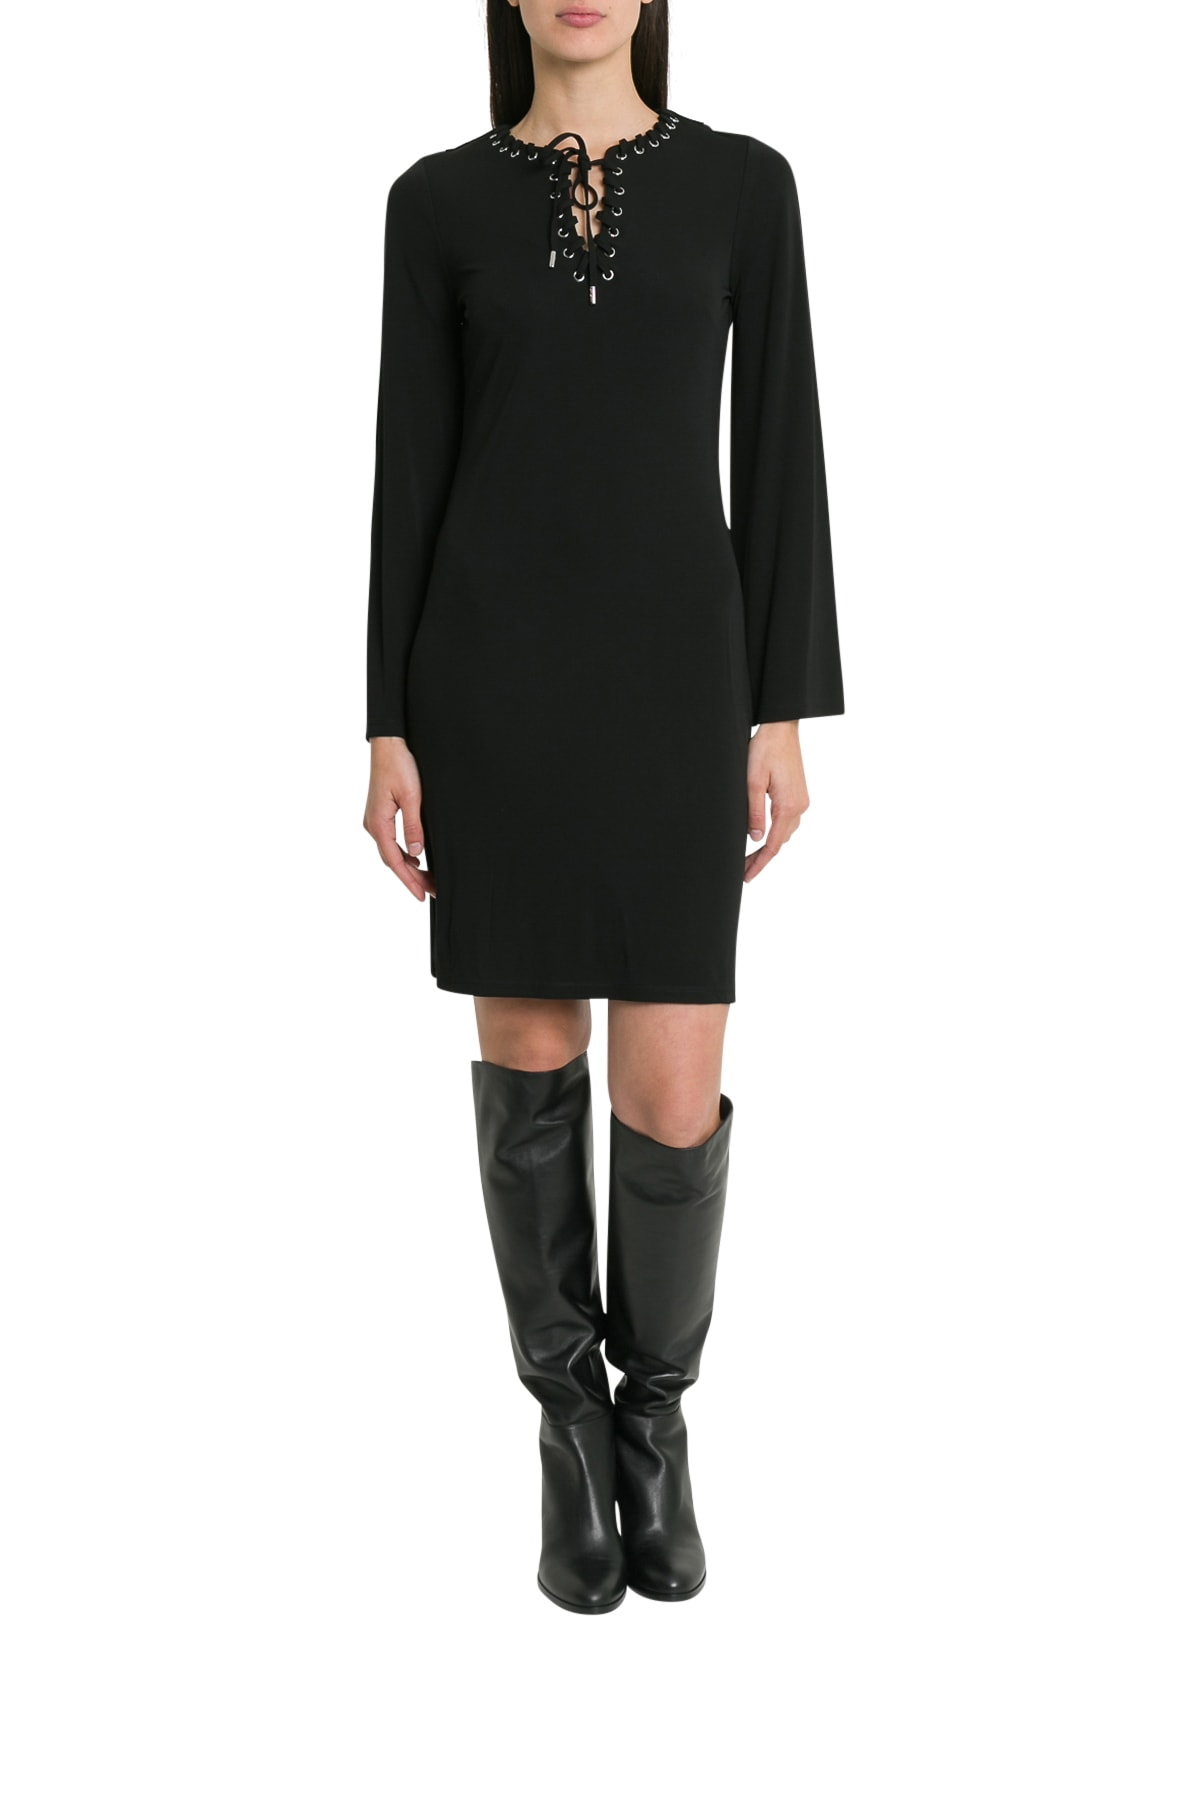 MICHAEL Michael Kors Tunic Dress